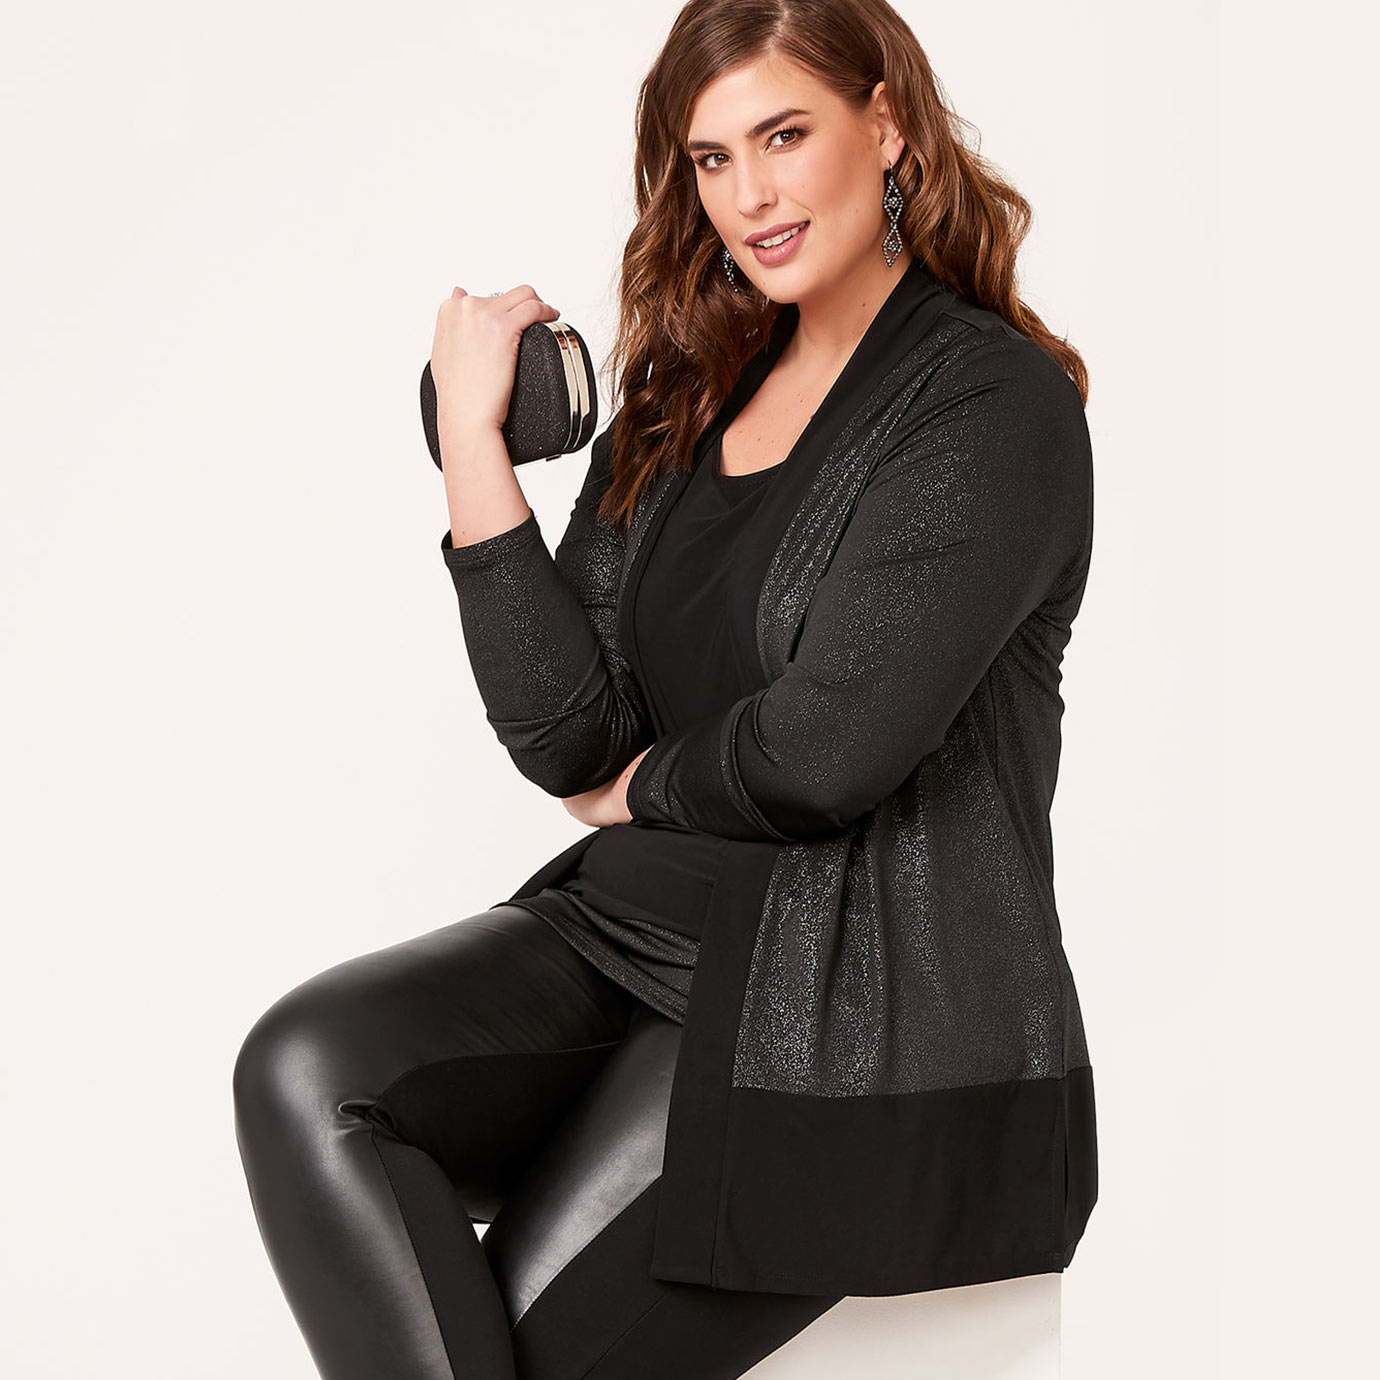 plus size clothing: dresses, tops, pants & more | laura